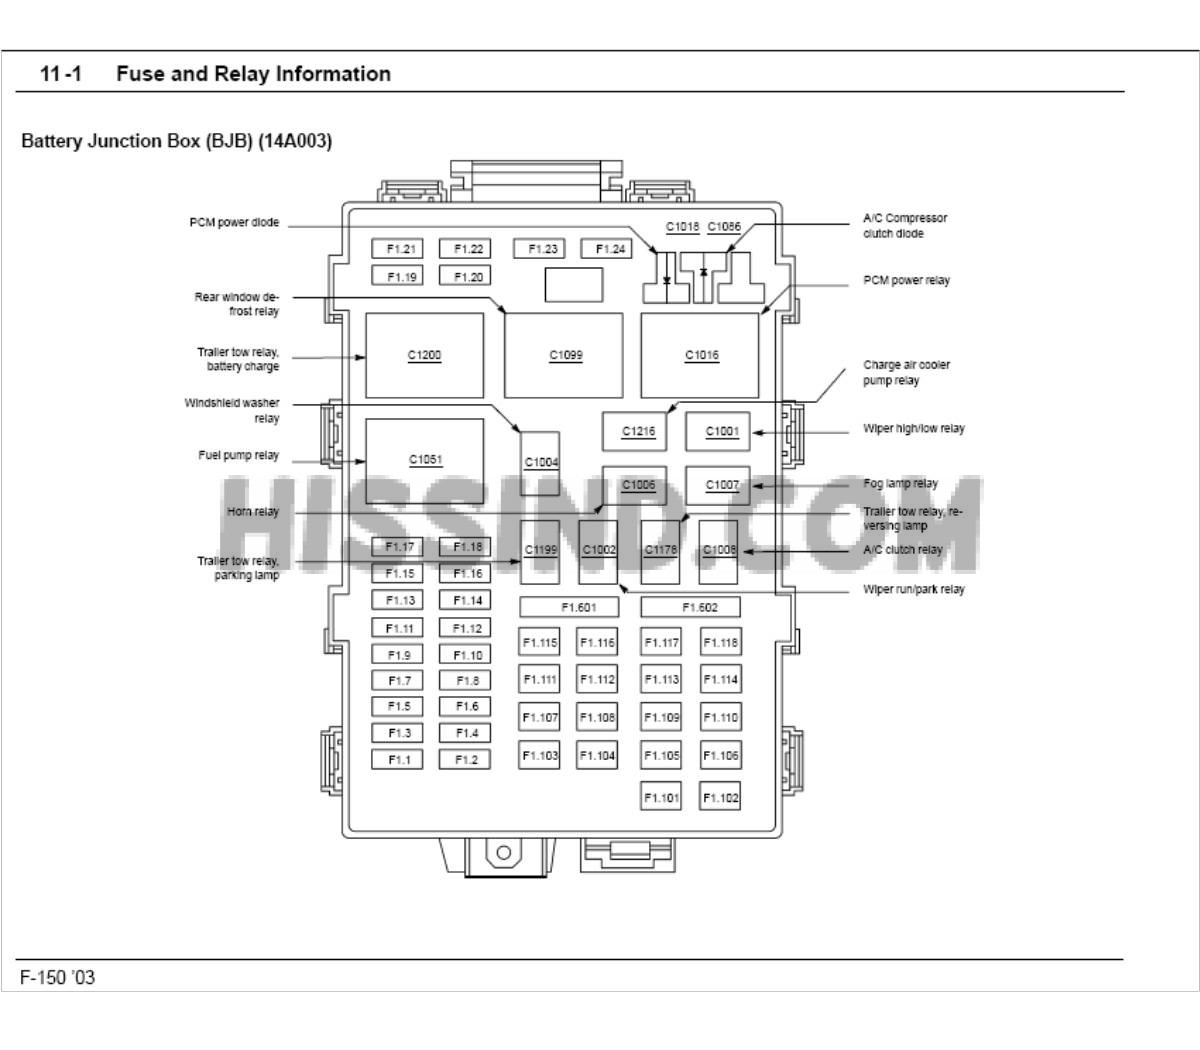 hight resolution of 2000 f150 fuse box diagram trusted wiring diagram 2004 hyundai santa fe fuse box diagram 05